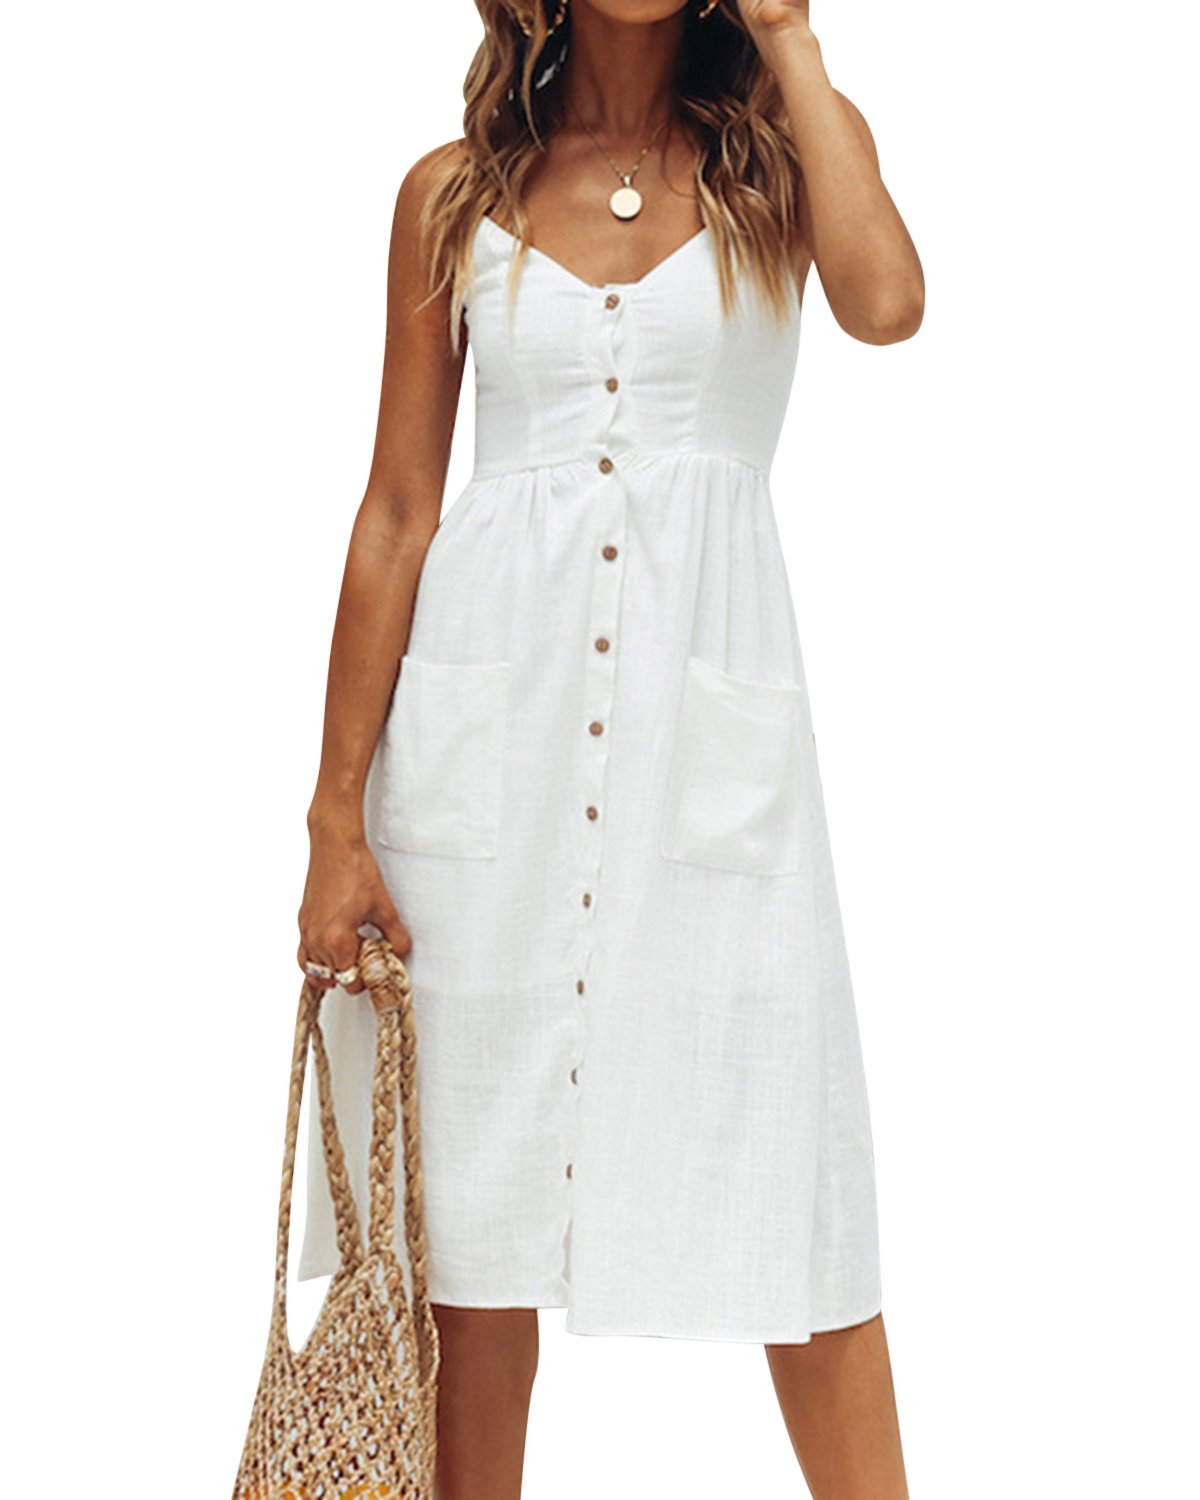 Jacansi Women Bohemian Sleeveless Backless Knee-Length Button up Midi Dress with Pocket White L by Jacansi (Image #2)